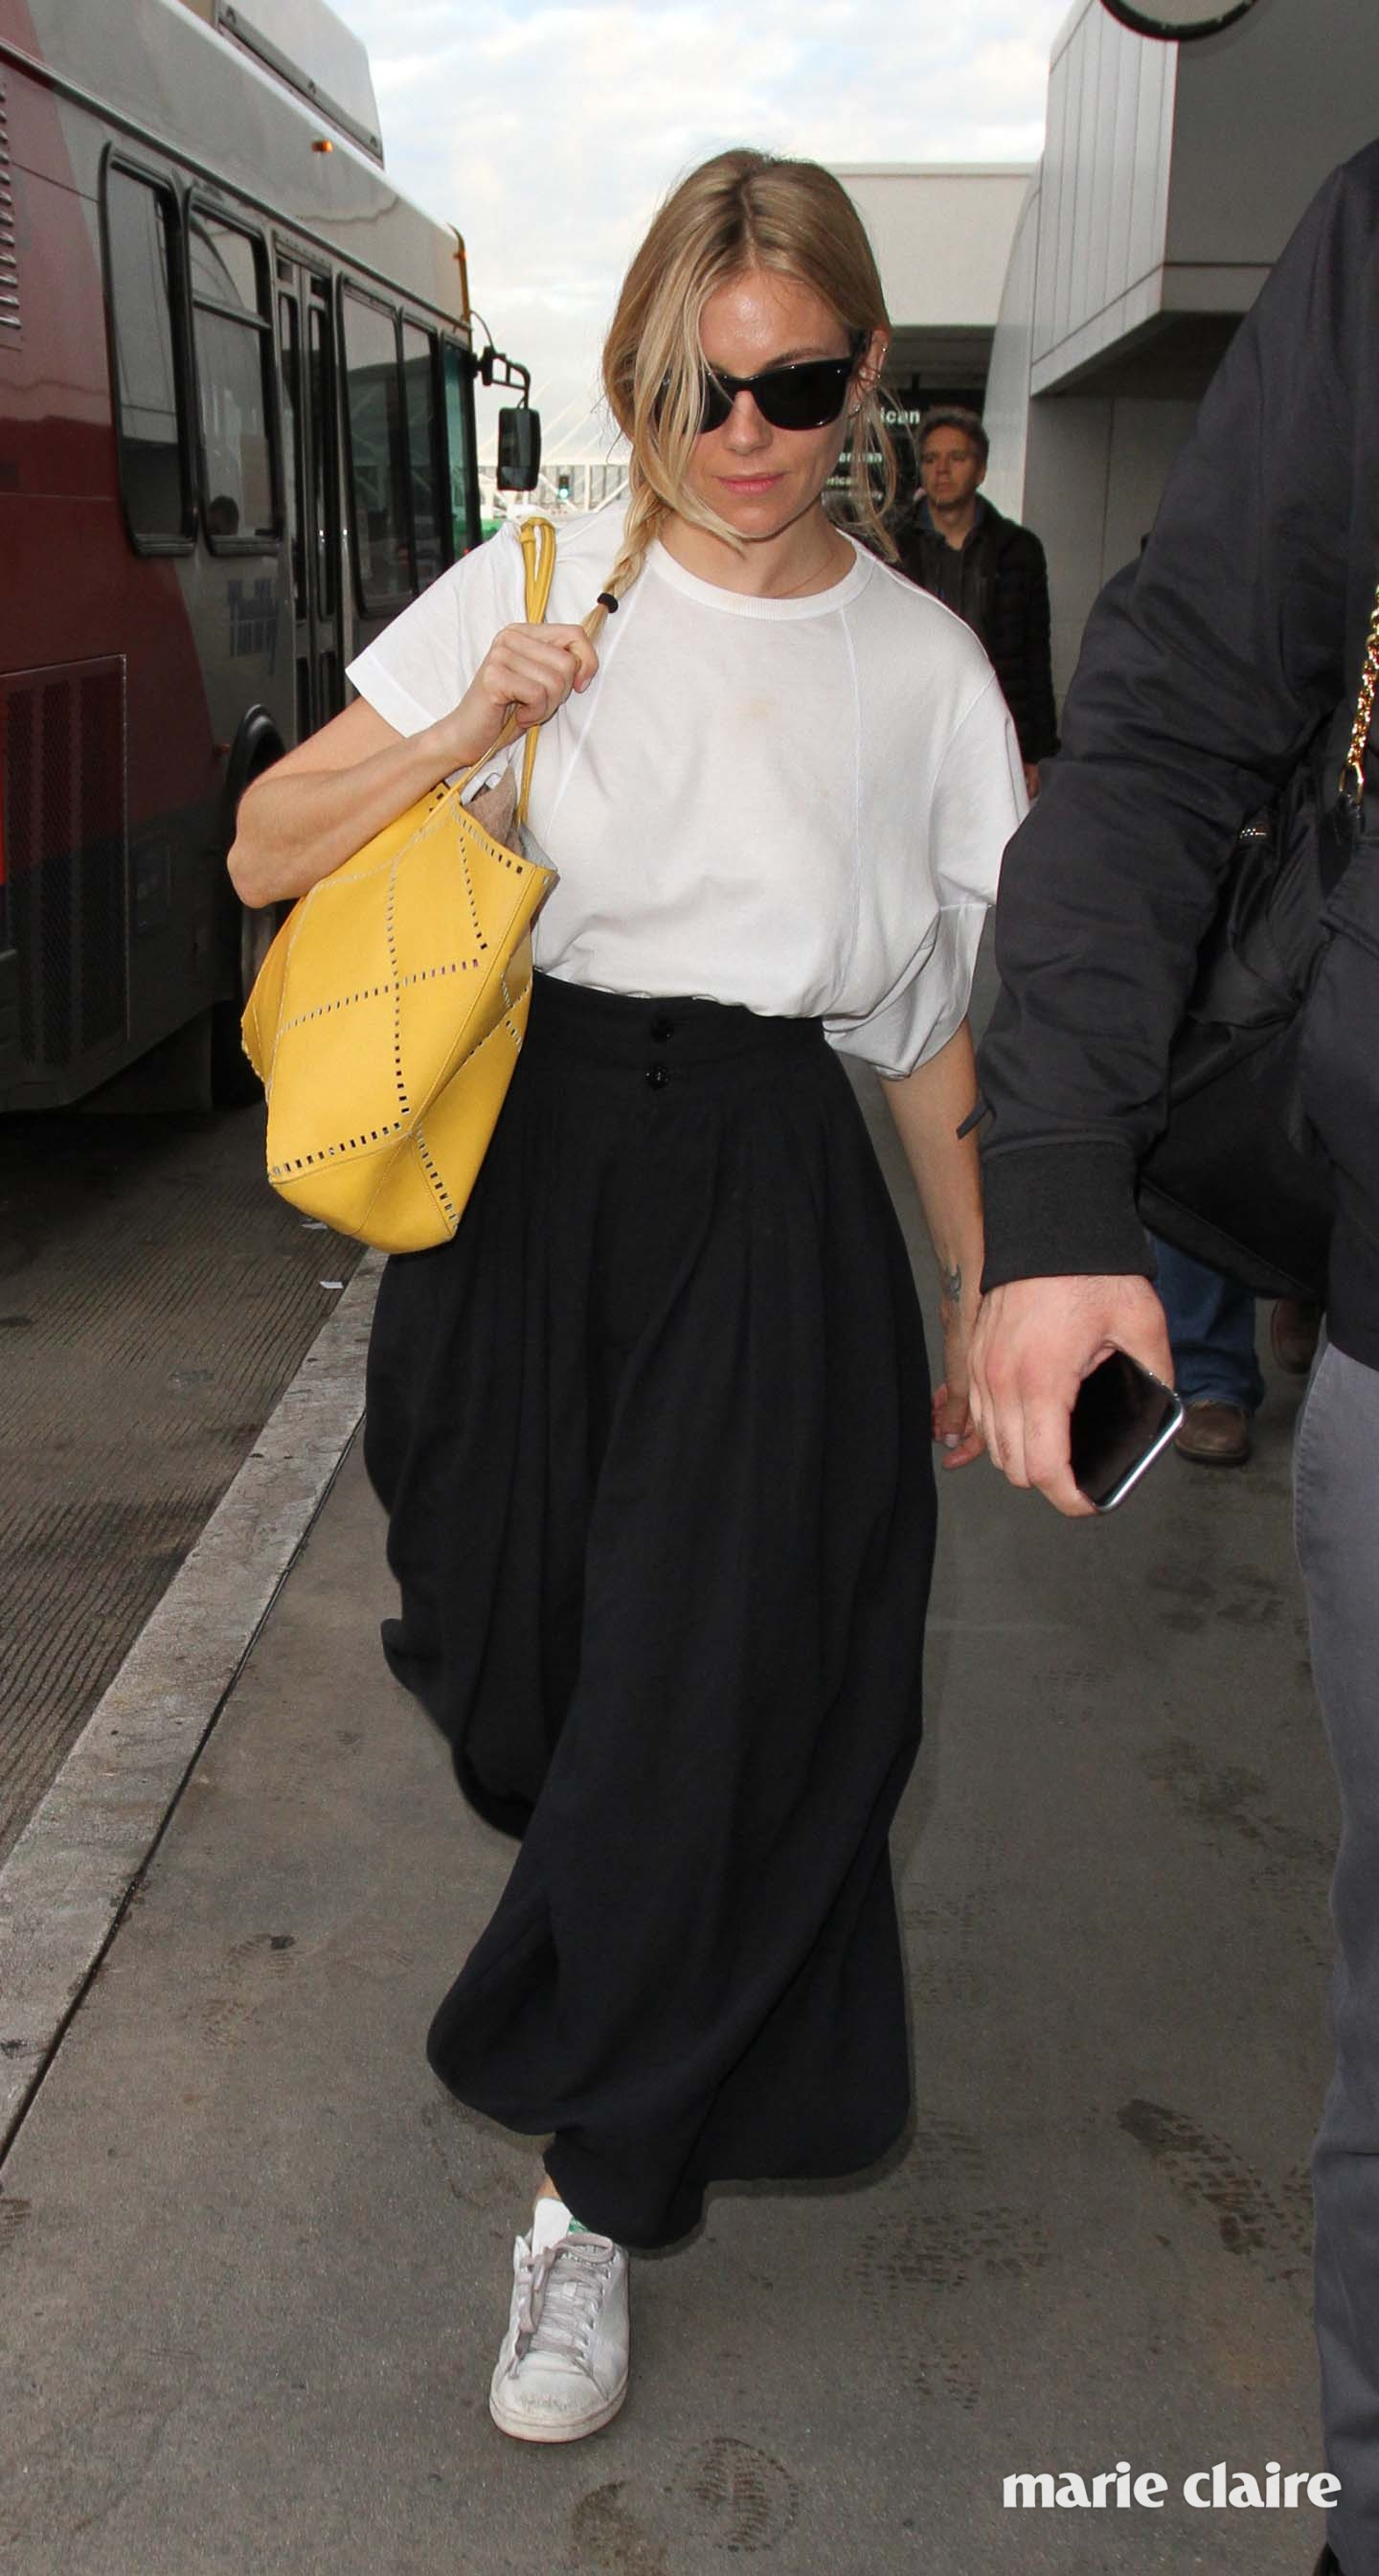 Sienna Miller arrives at the airport Featuring: Sienna Miller Where: Los Angeles, California, United States When: 06 Jan 2017 Credit: WENN.com